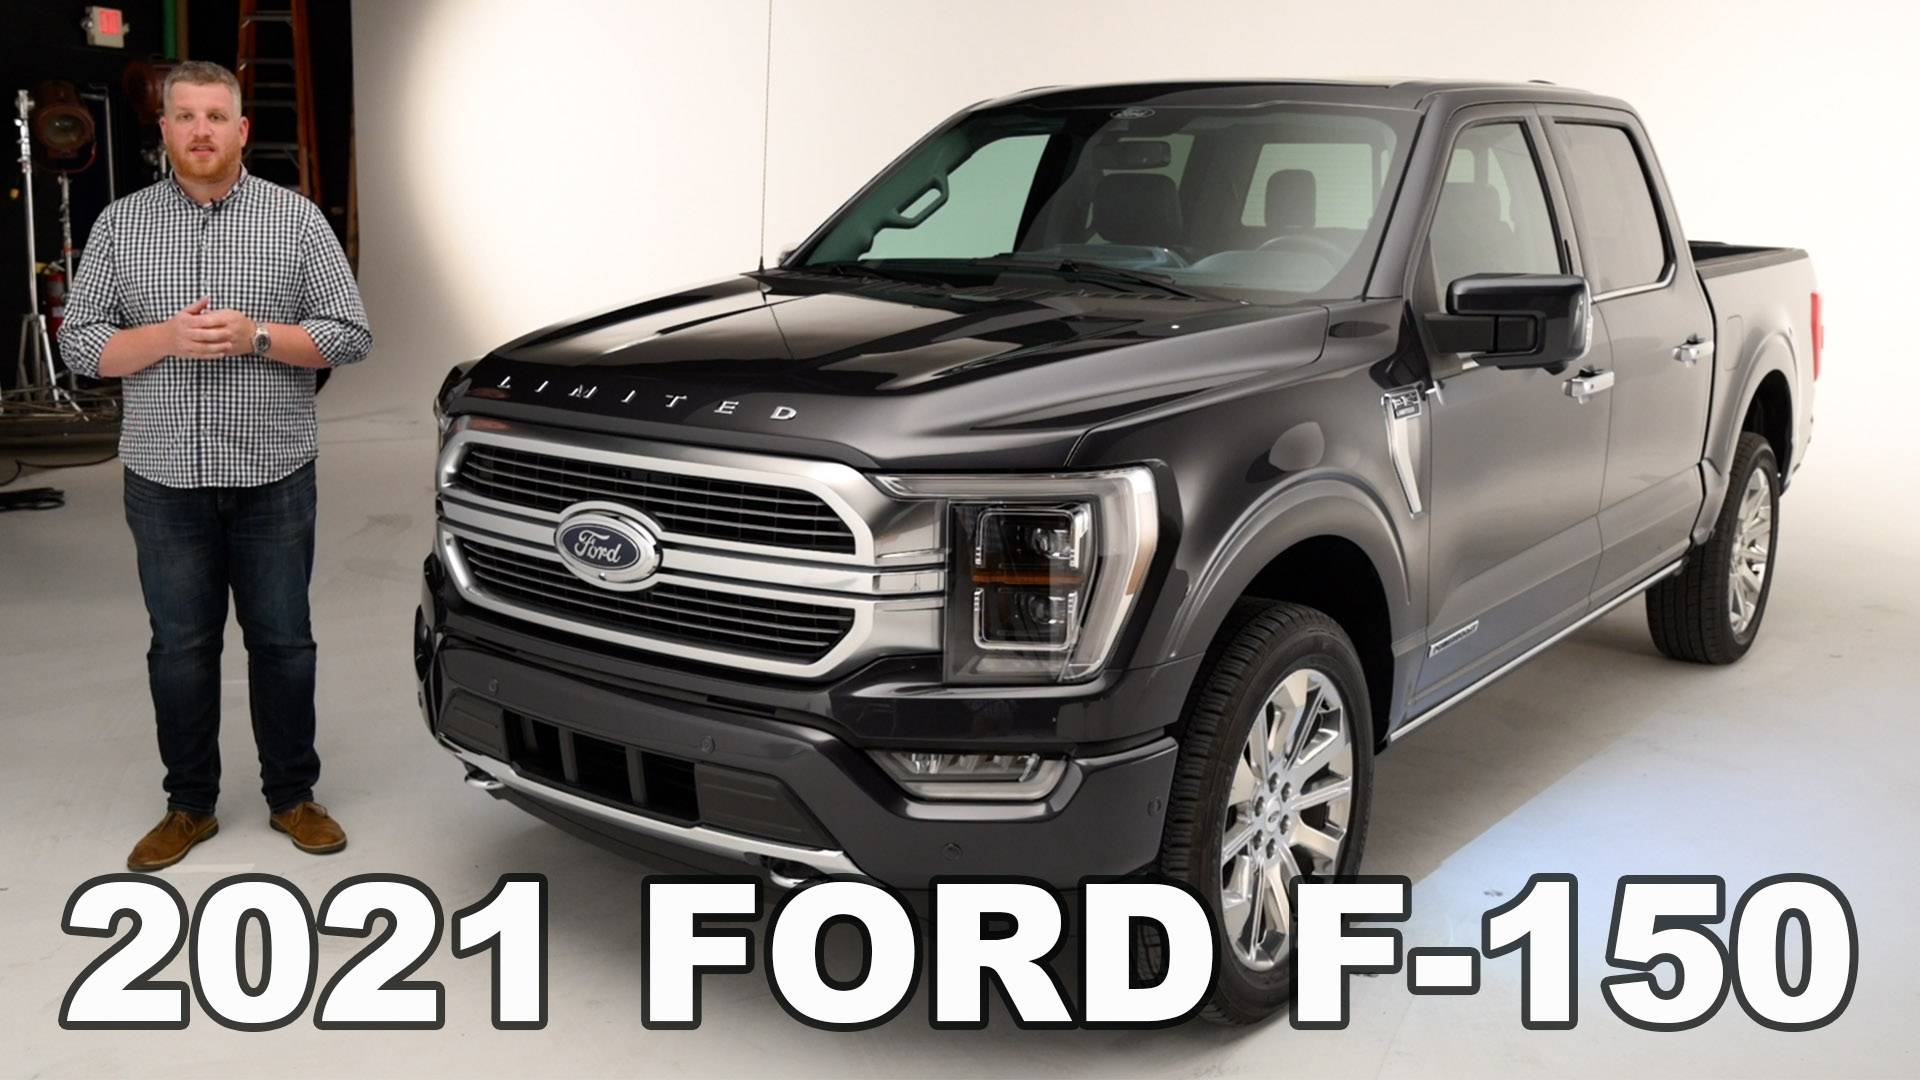 Best new cryptocurrency 2021 ford boxing tips betting